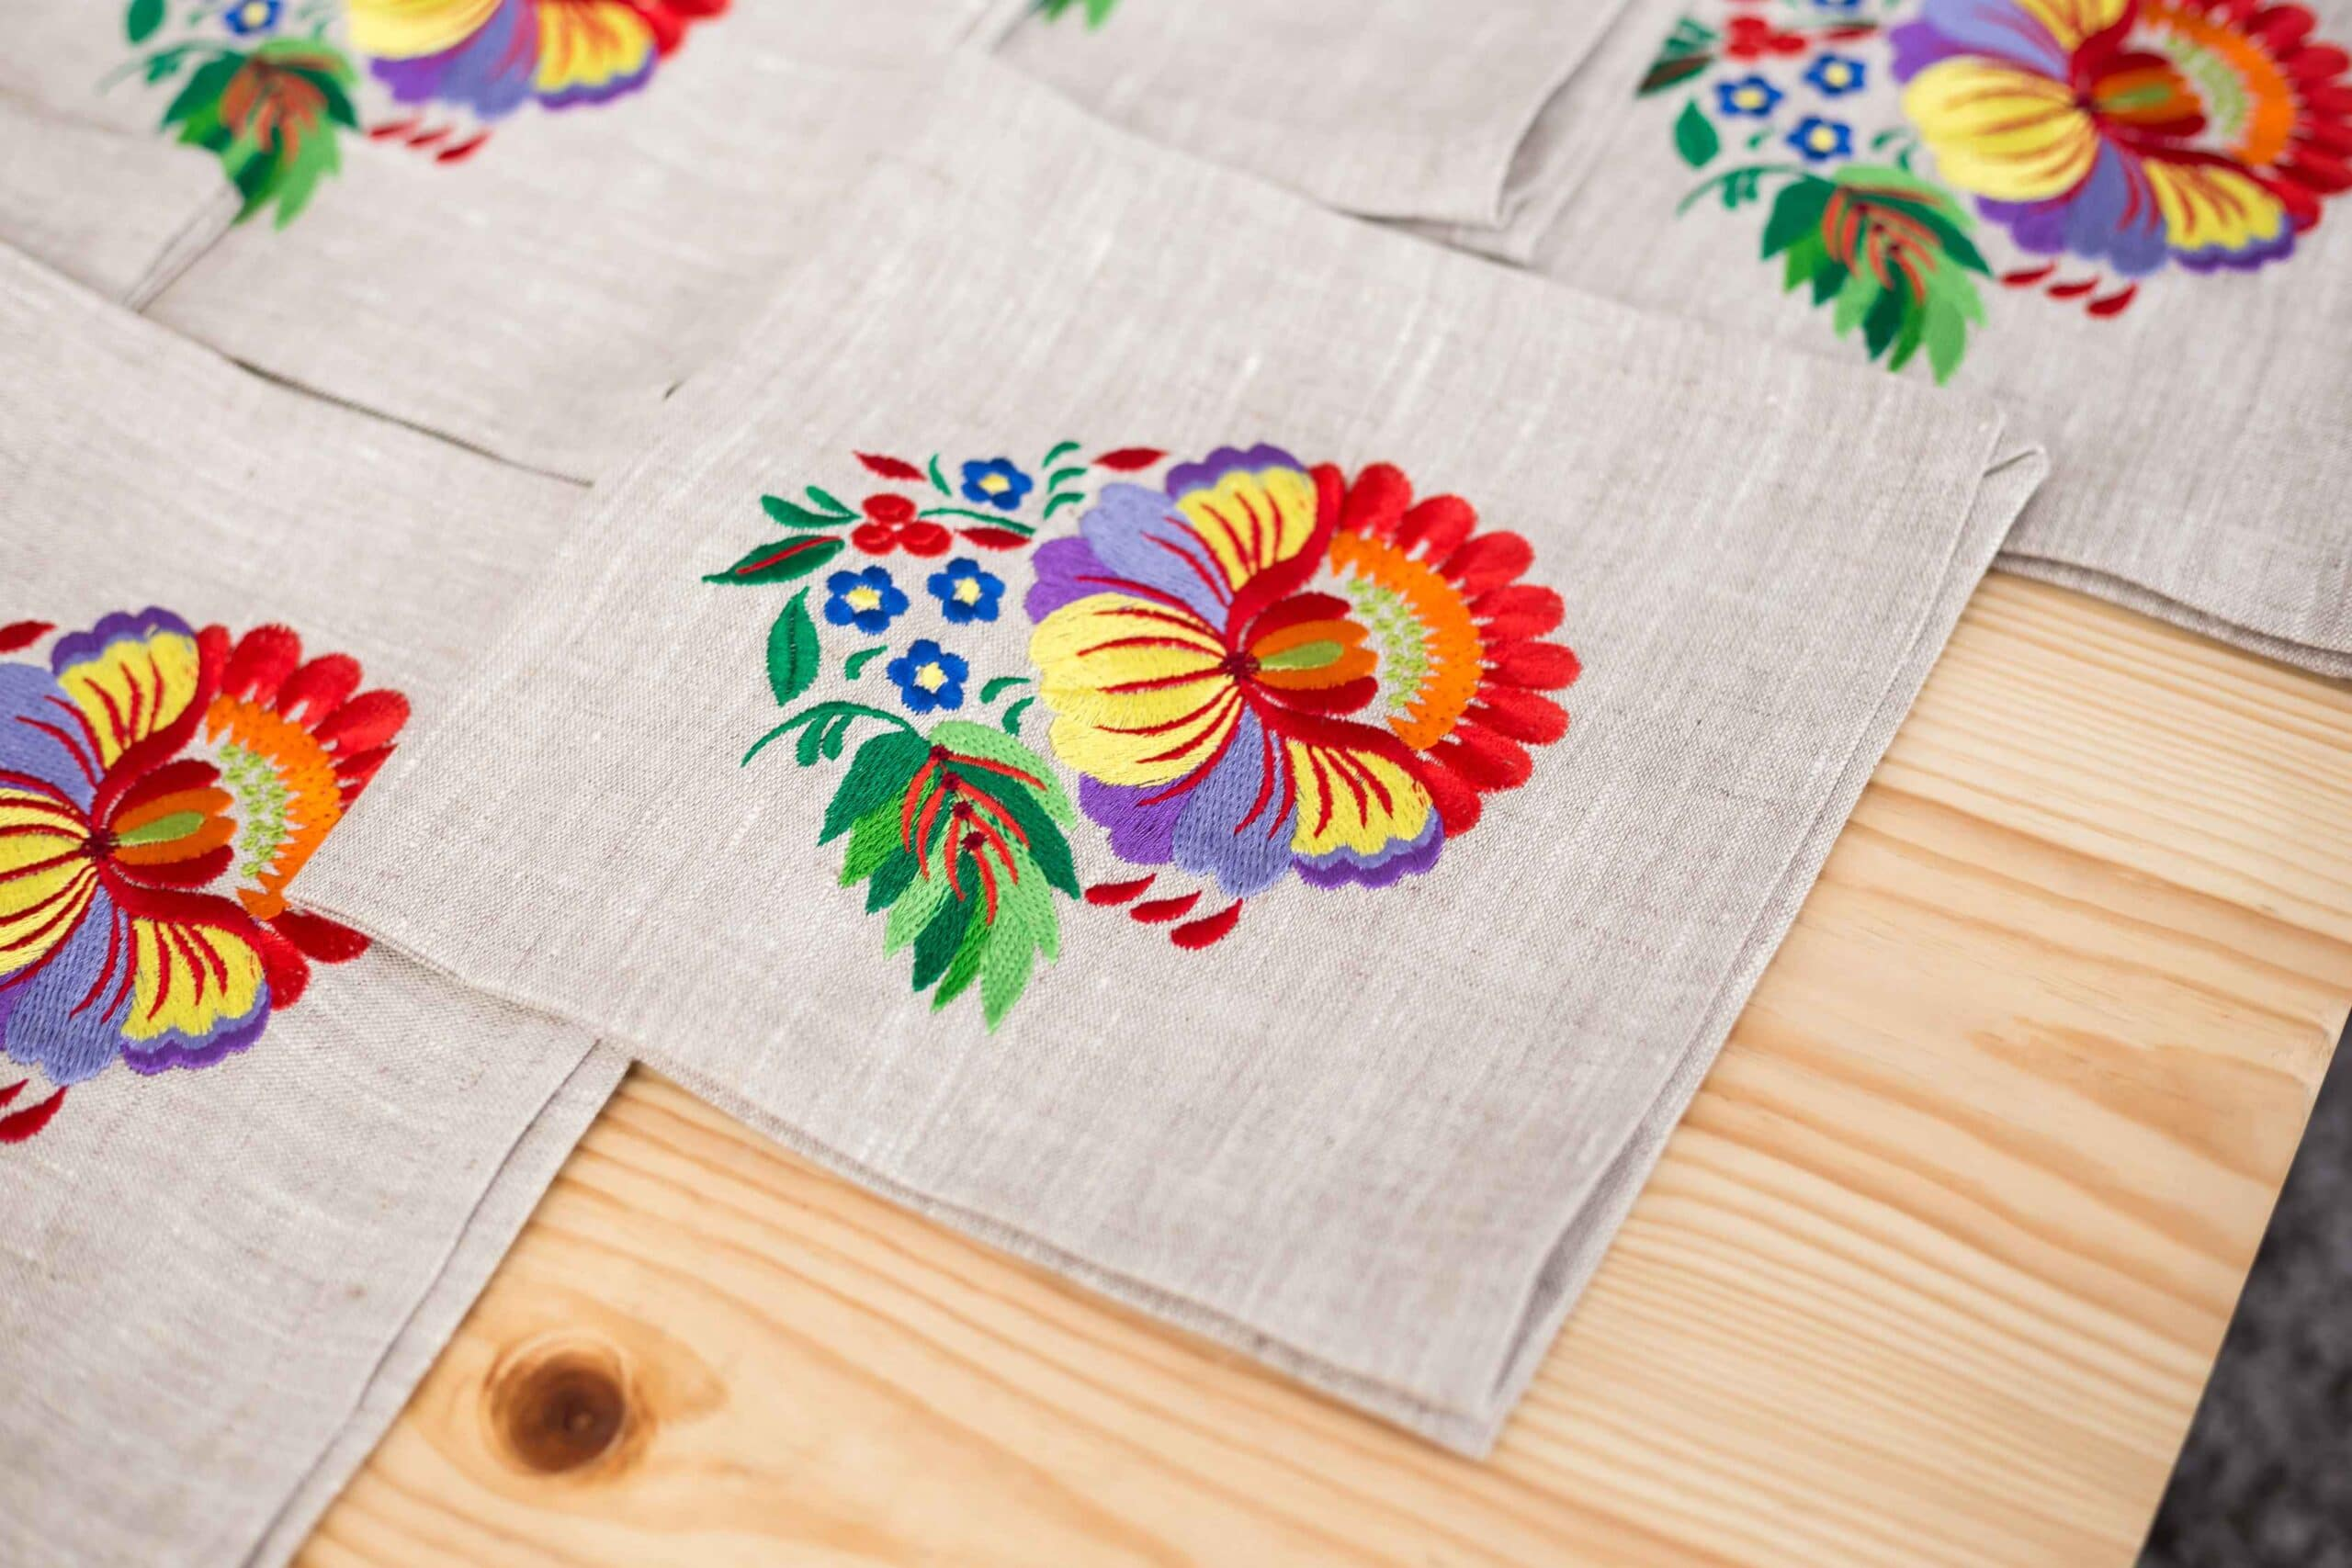 Custom embroidered tablecloth